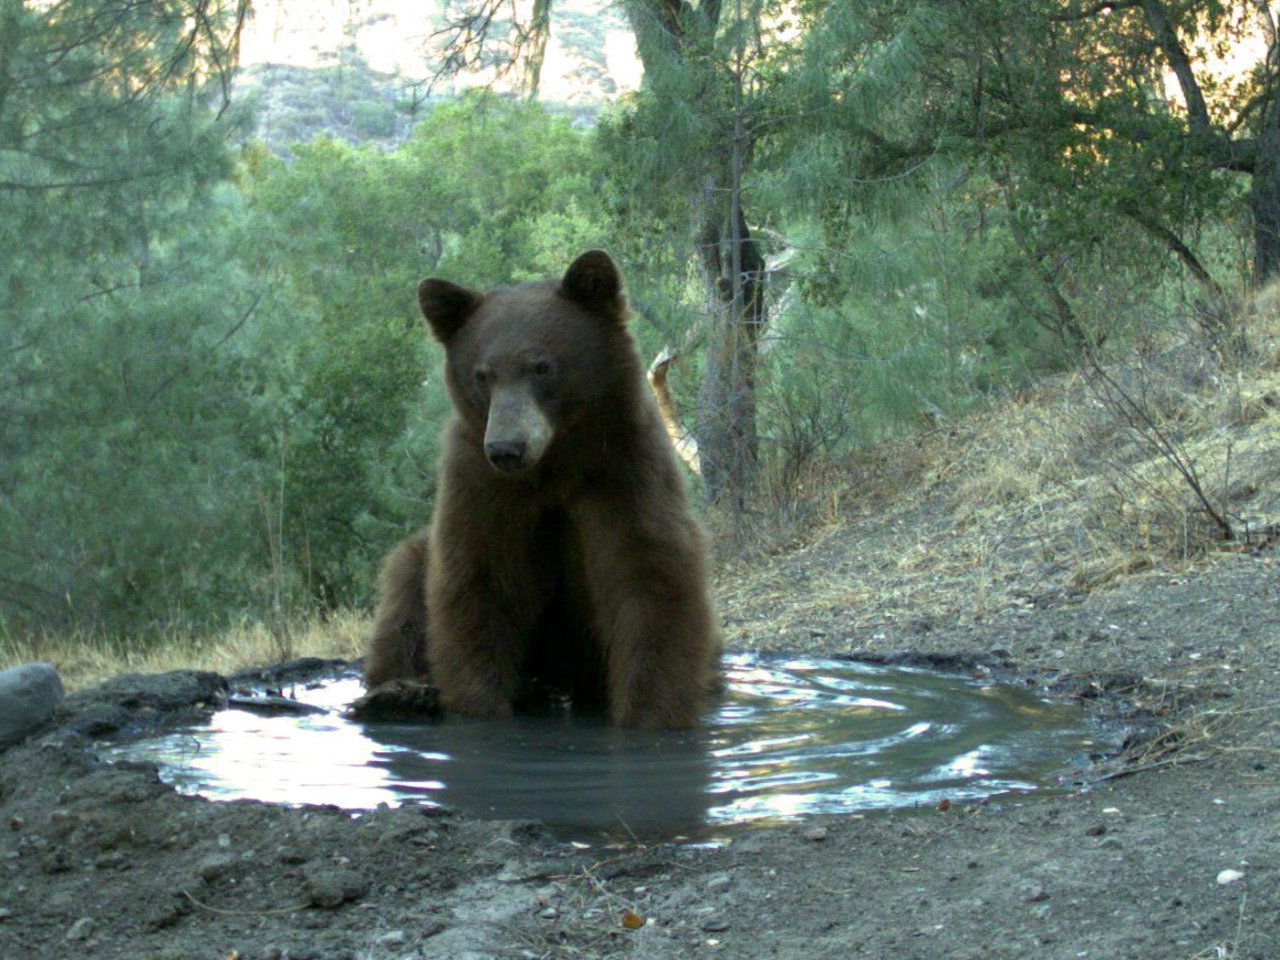 Where's the Bear? Automating Wildlife Image Processing Using IoT and Edge Cloud Systems